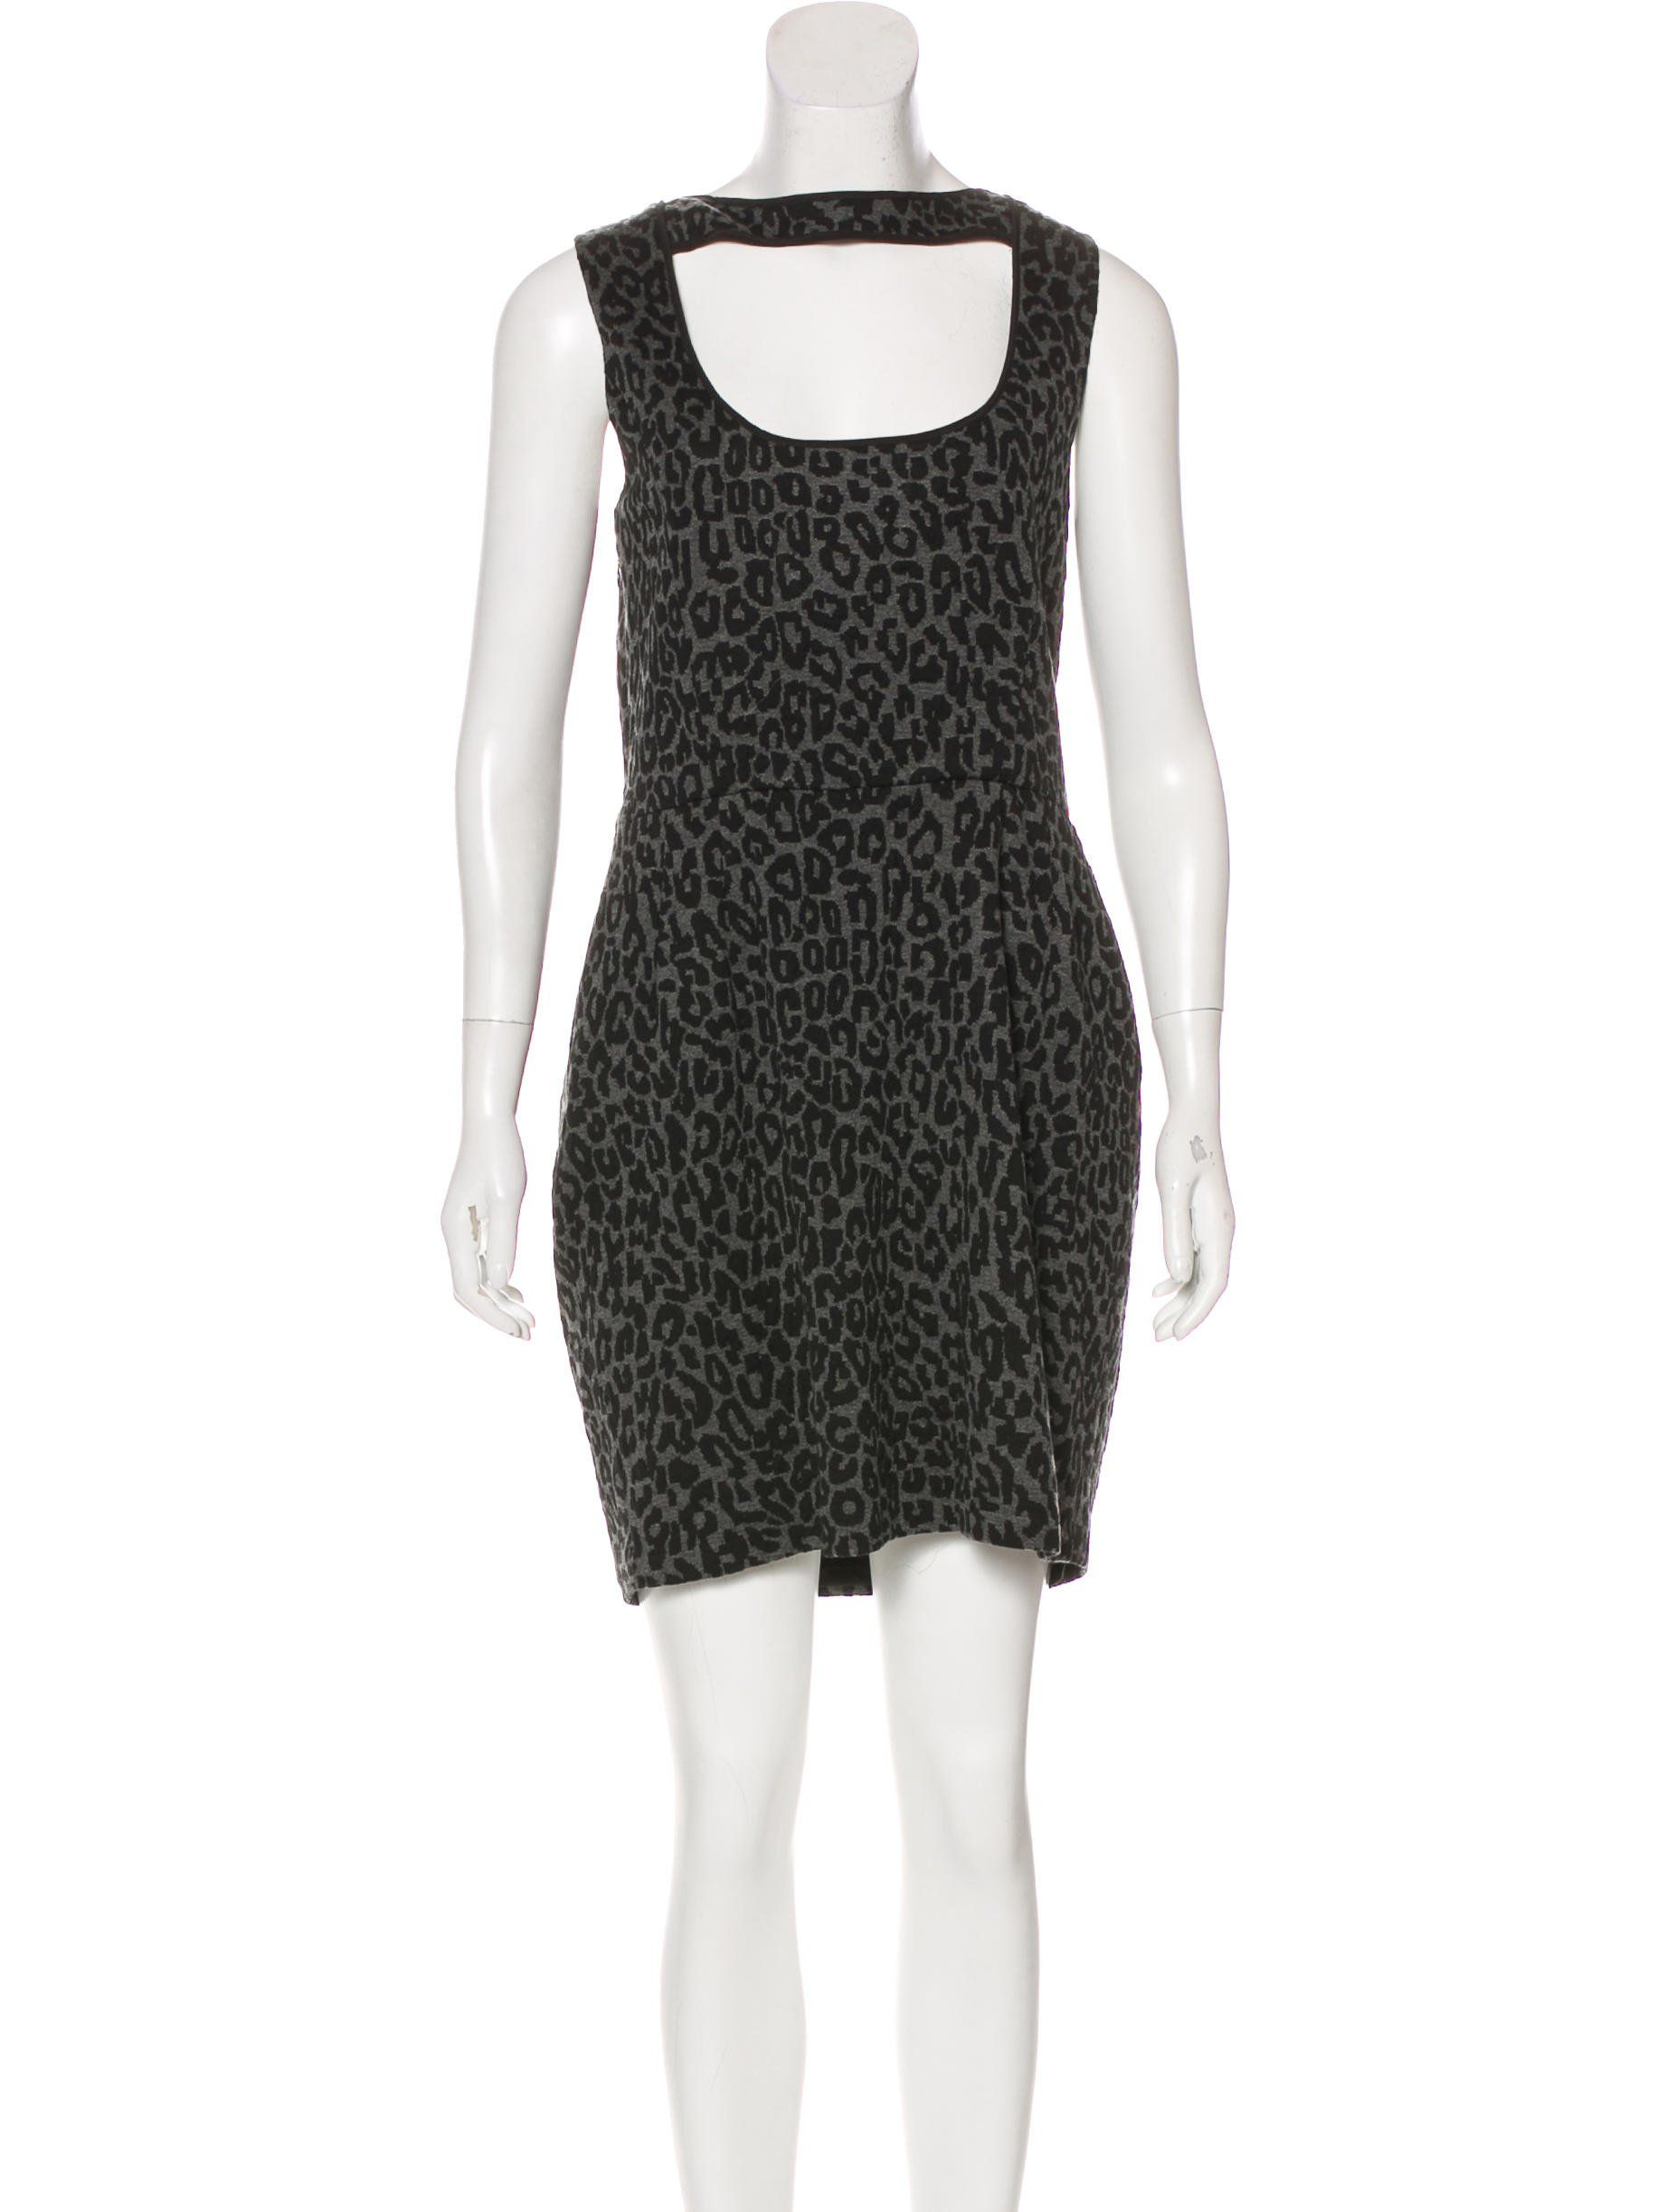 4f6706e708ee Grey and black Timo Weiland sleeveless mini dress featuring abstract  pattern throughout, leather trim, lace panels at bust, vent at back and  concealed zip ...